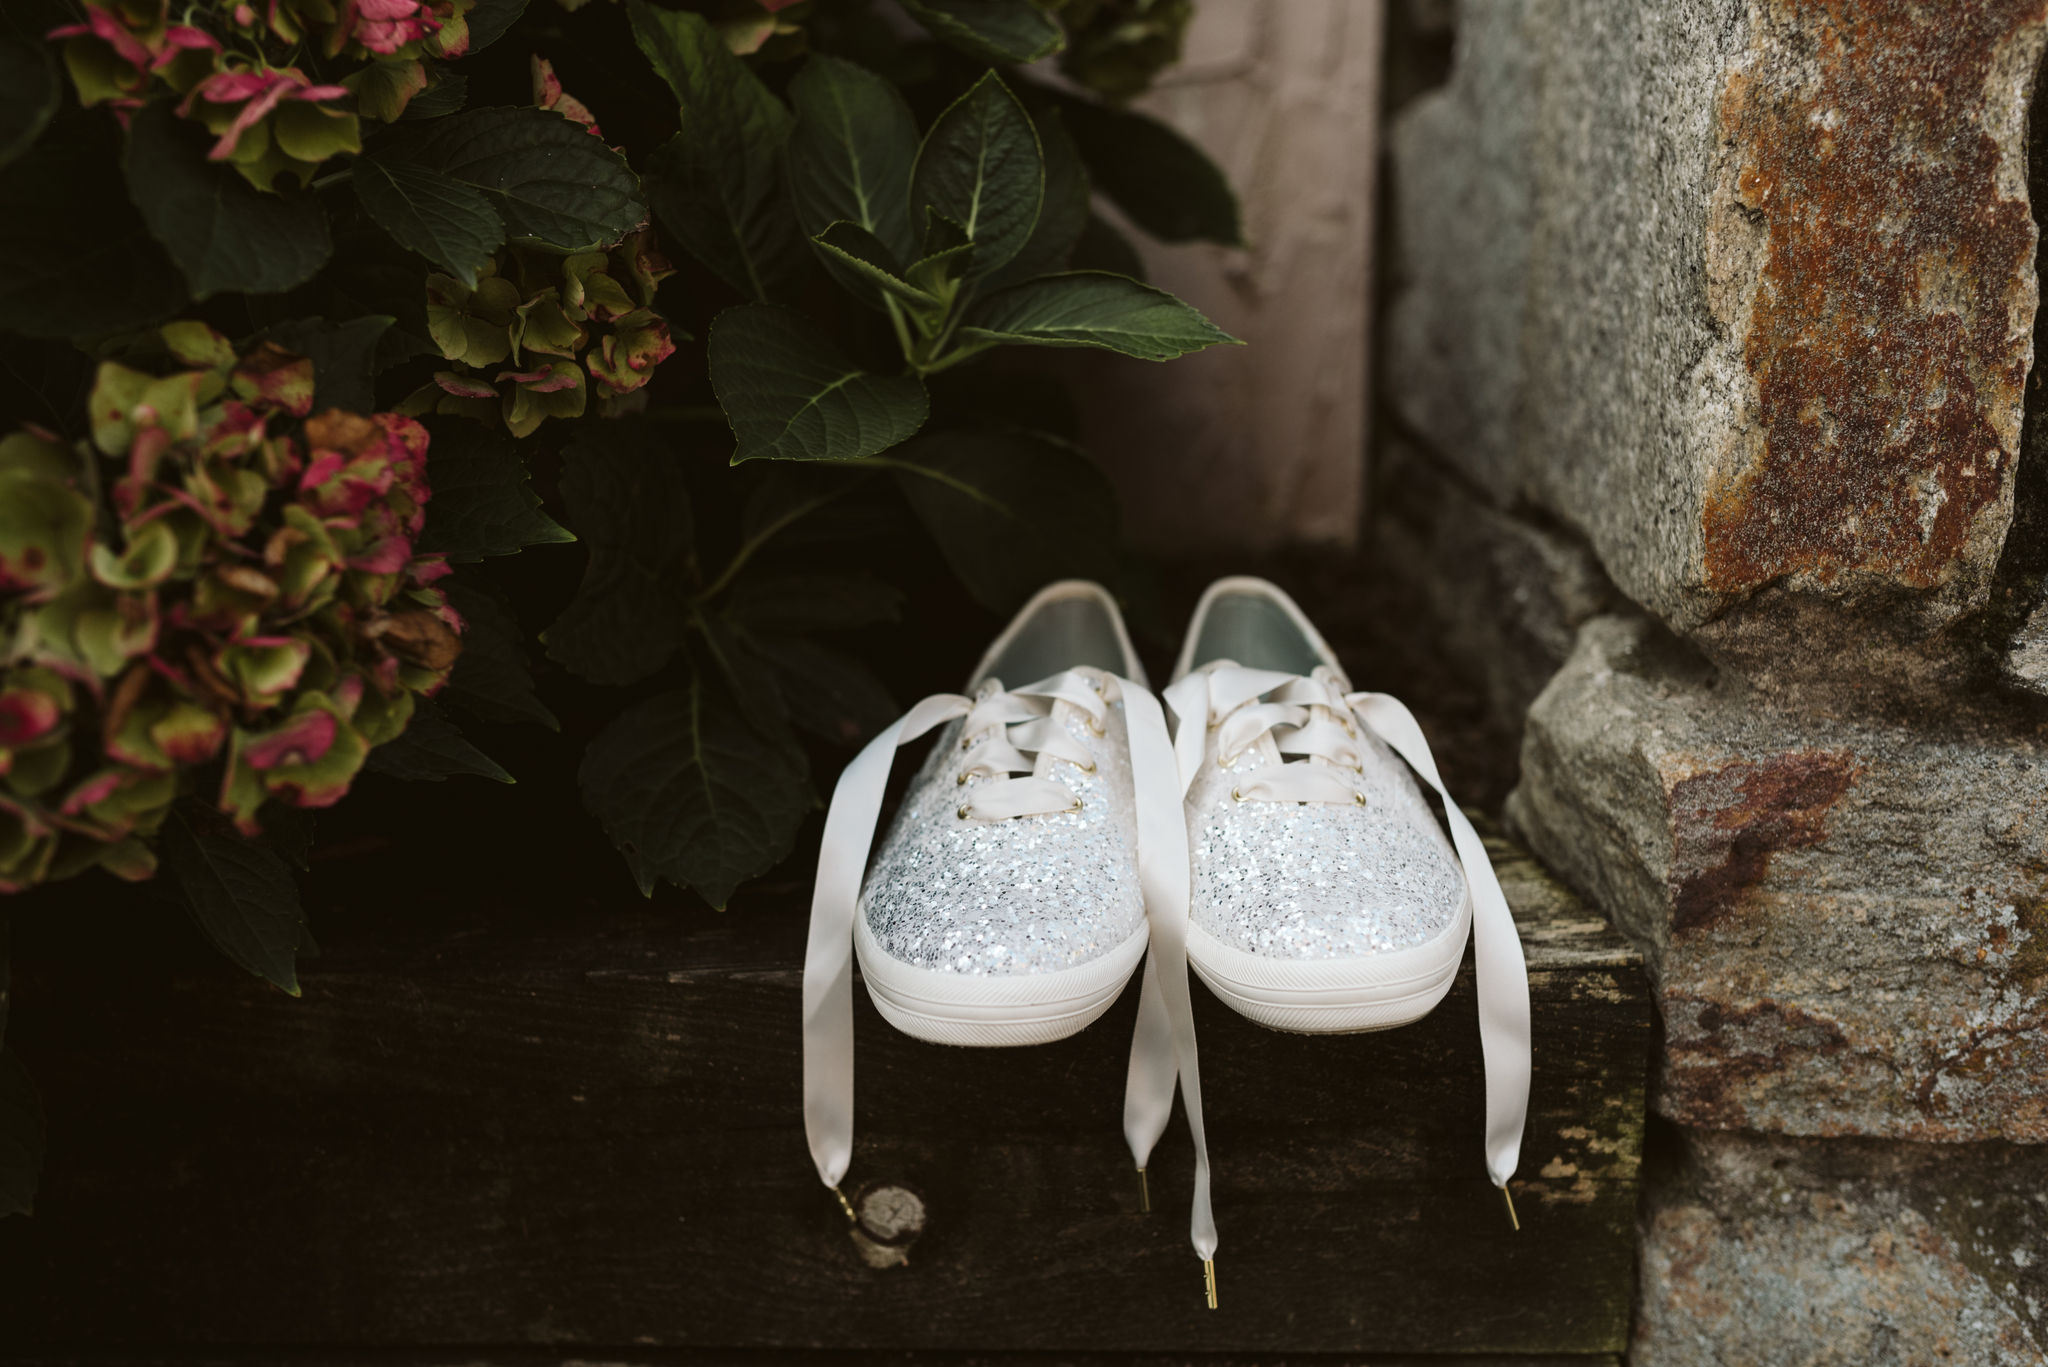 Phoenix Maryland, Baltimore Wedding Photographer, Eagle's Nest Country Club, Classic, Romantic, Spring, Bridal Shoes, Glitter Keds